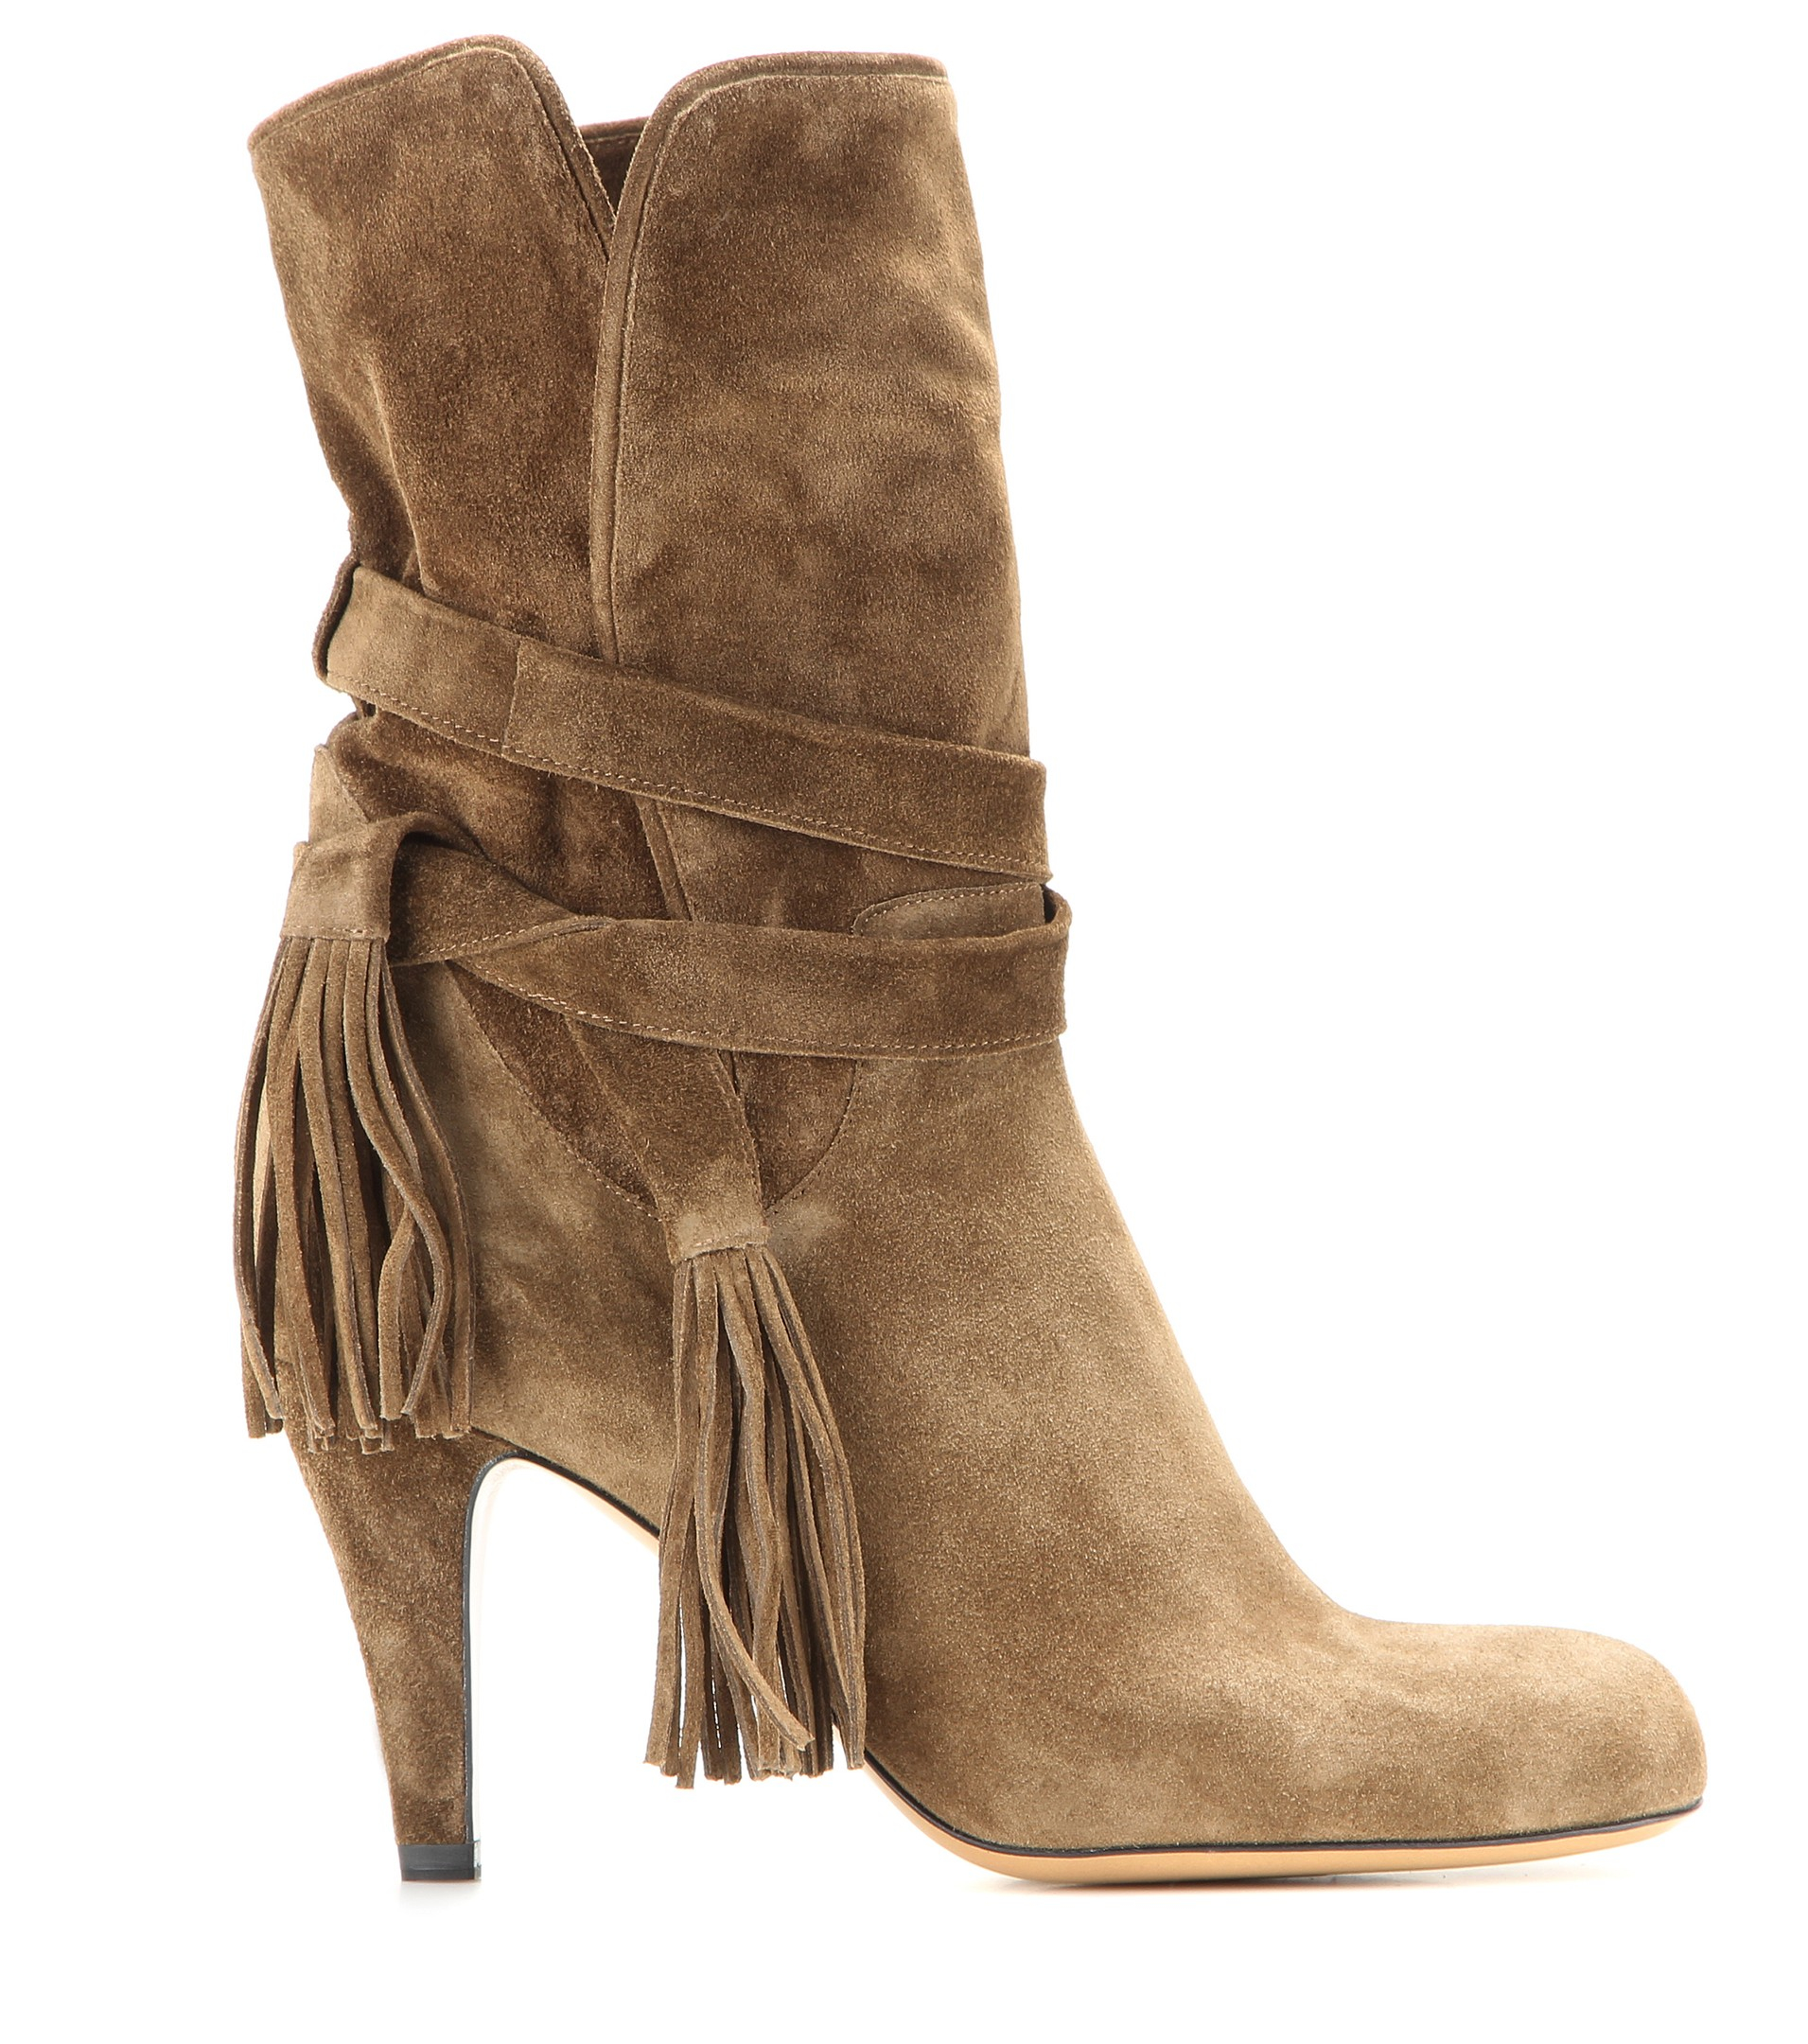 Chloé Wrap-Tie Suede Ankle Boots in Green   Lyst